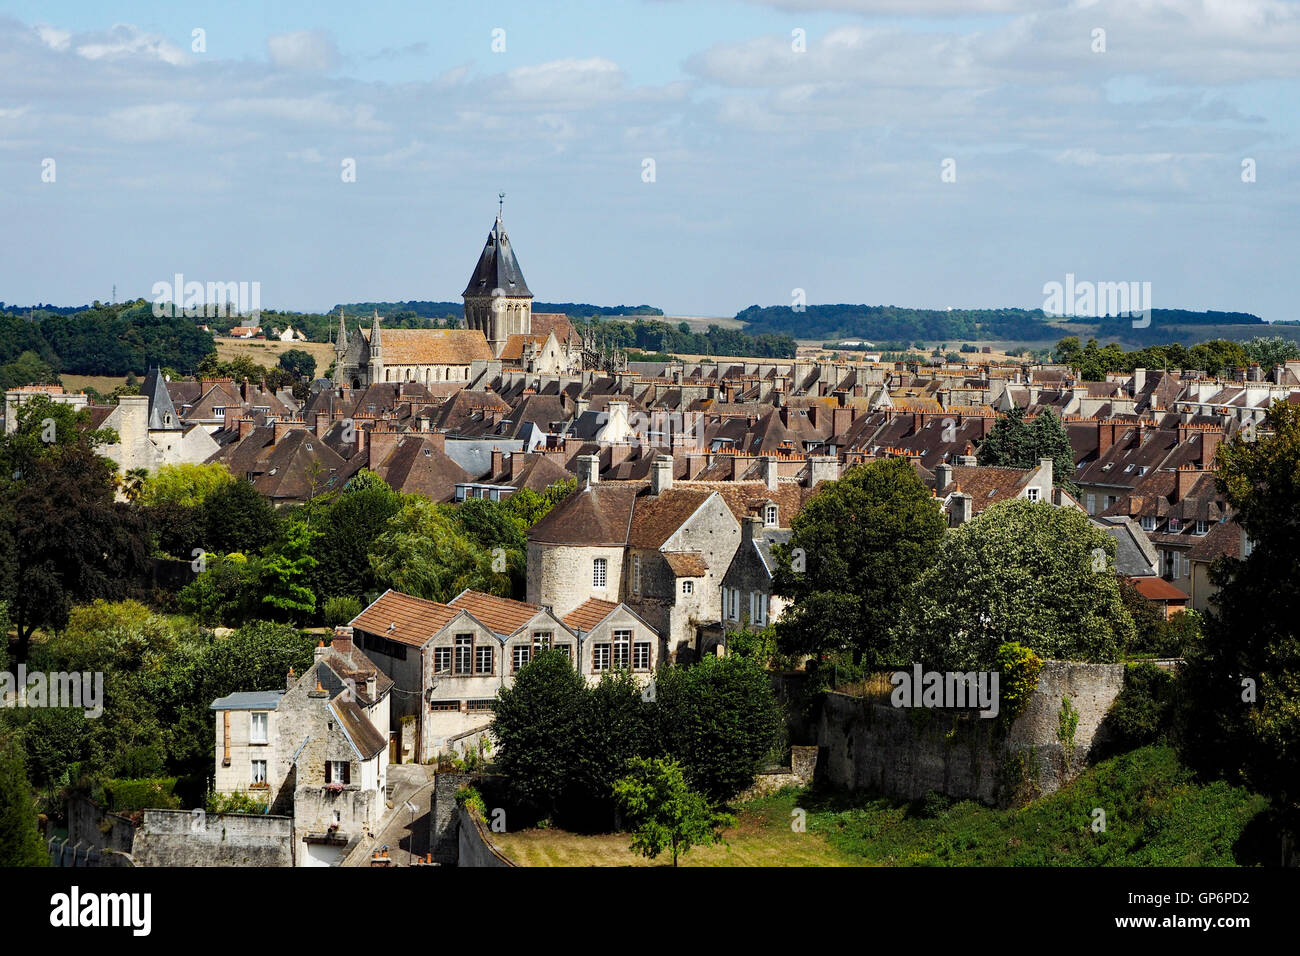 Looking across Falaise town from the keep of Château de Guillaume le Conquérant (William the Conqueror's Castle), Stock Photo